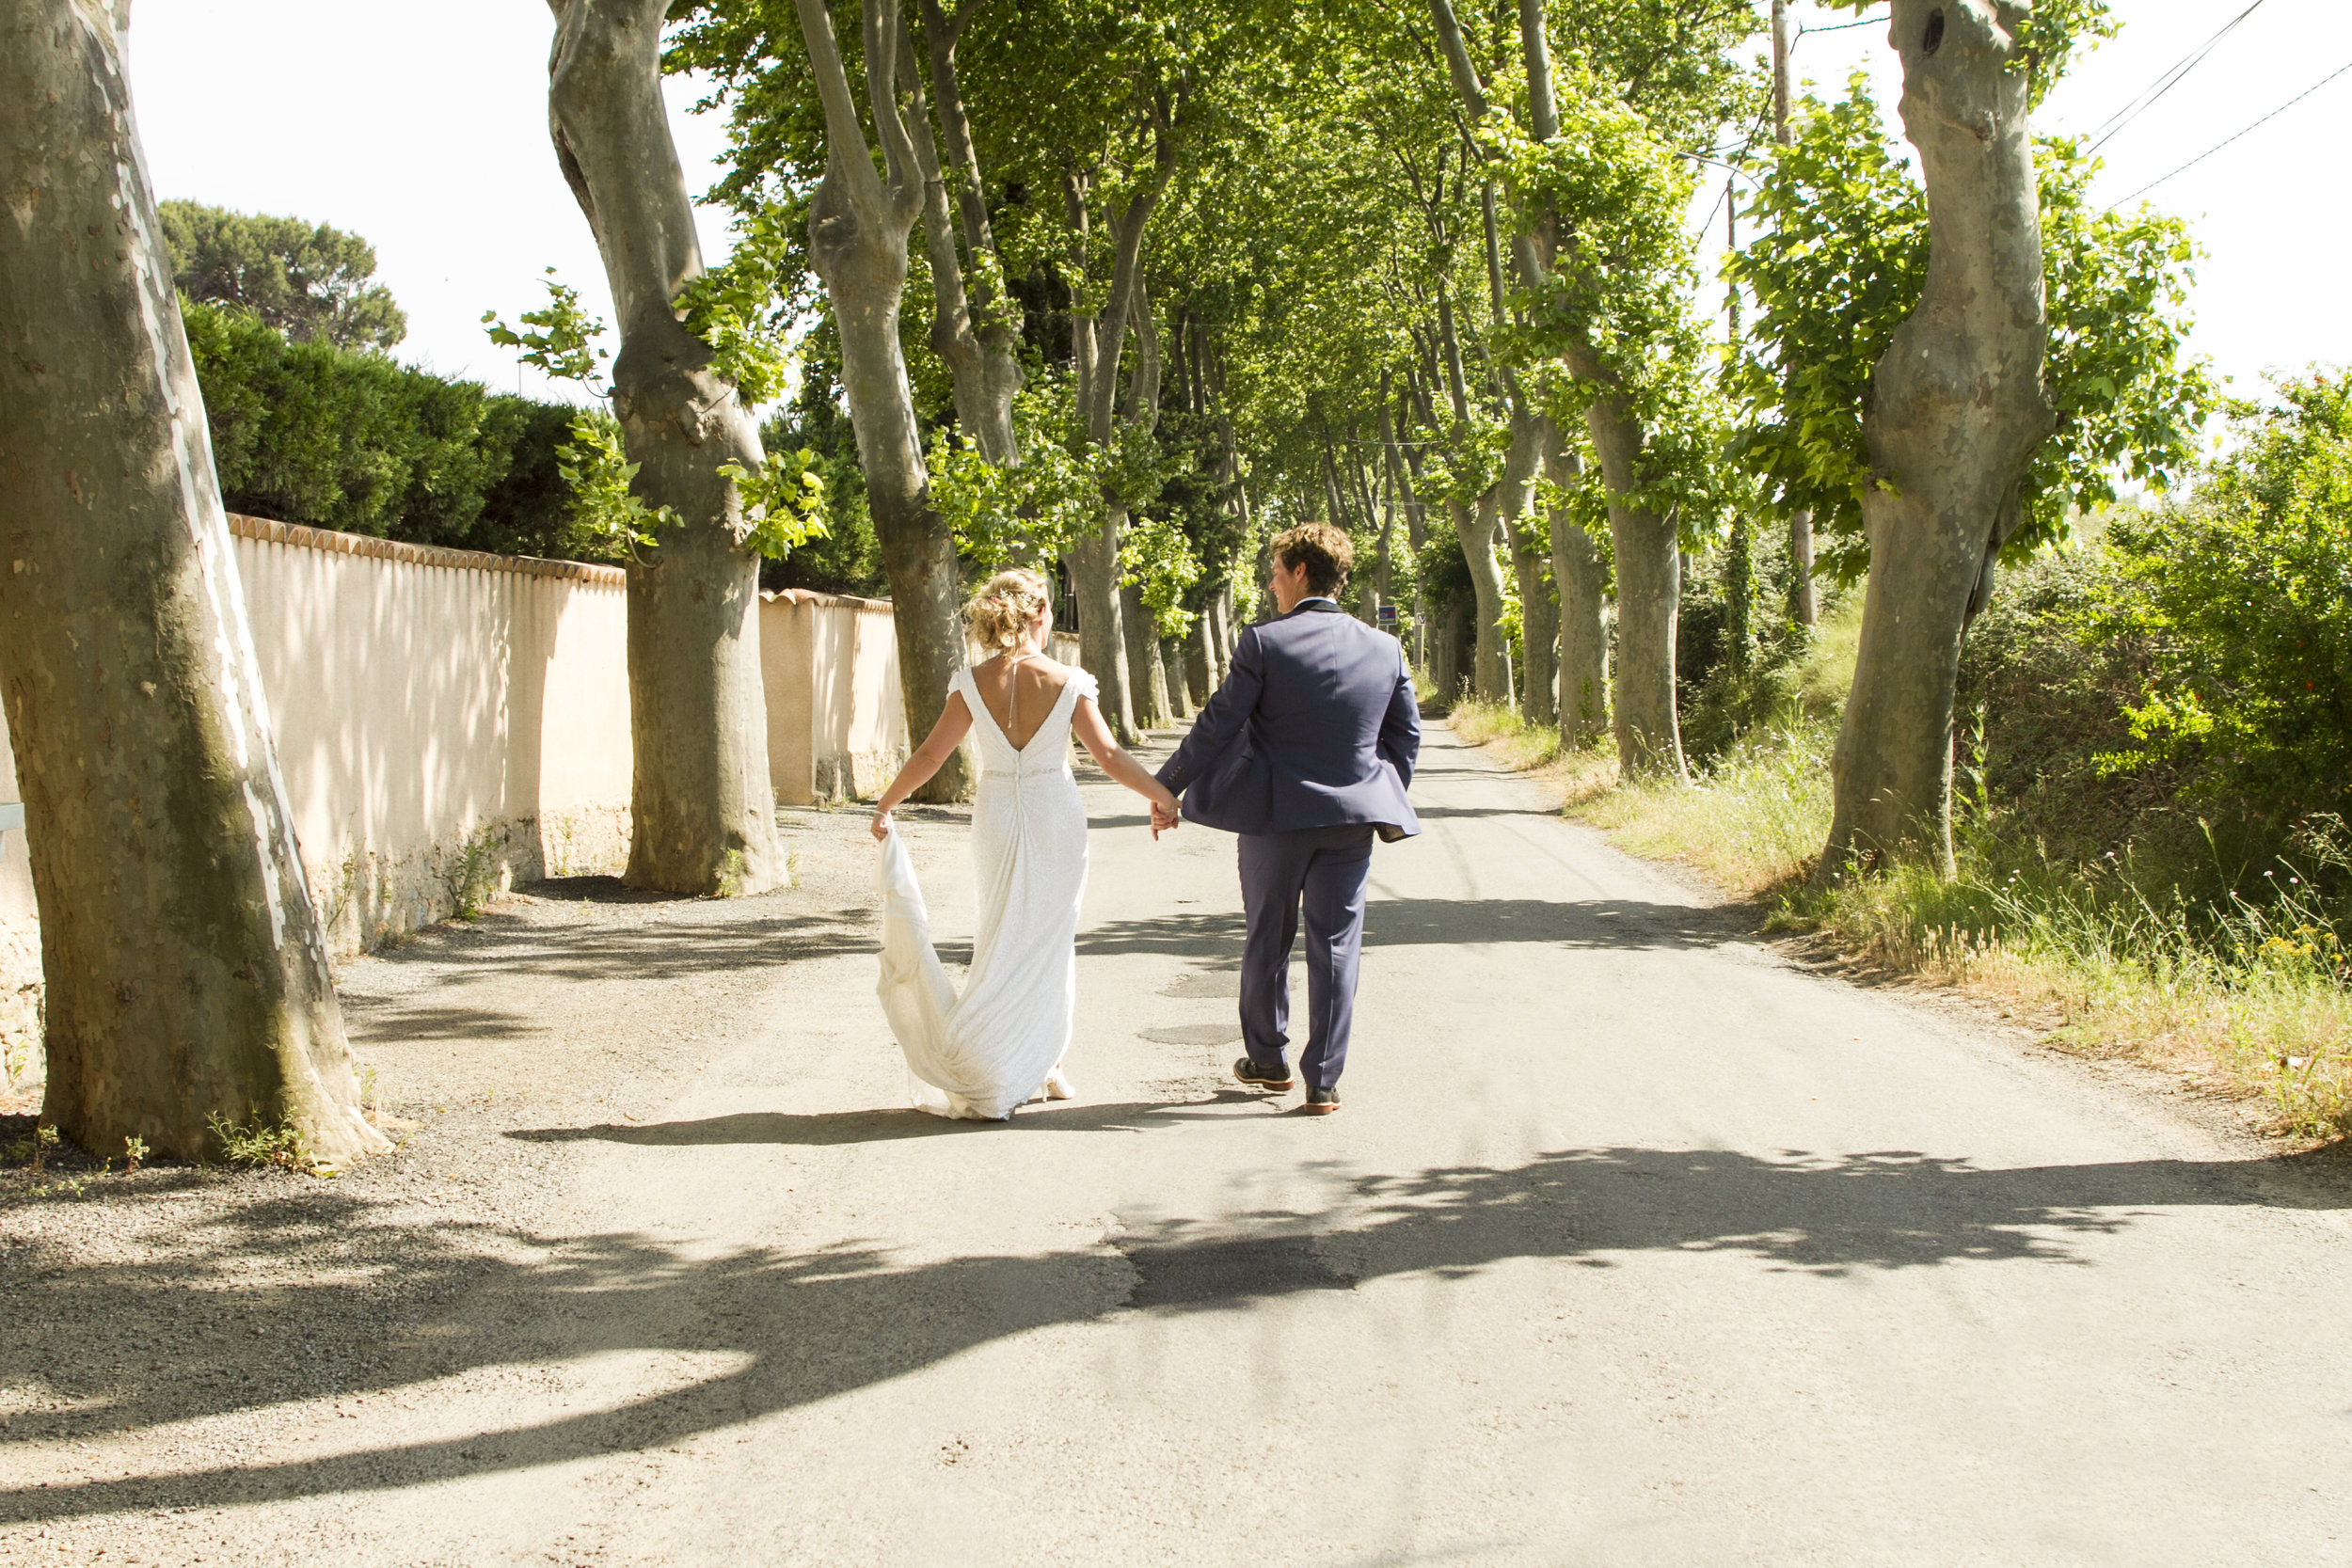 Chris & Kate - Emily came to France to take our wedding pictures and she was more than happy to do so.She was well organised and knew what shots she needed to capture our perfect day from start to finish all the details of dress shoes hair etc and even my husband getting ready too was an added bonus to see the pictures and the happiness she captured in doing so.I'm never one to like having pictures taken but Emily made us feel relaxed and at ease she was quick and thorough so we could move on to enjoying our day with our family and friends.She comes highly recommended and can't wait to now use her for our first child's pictures too.